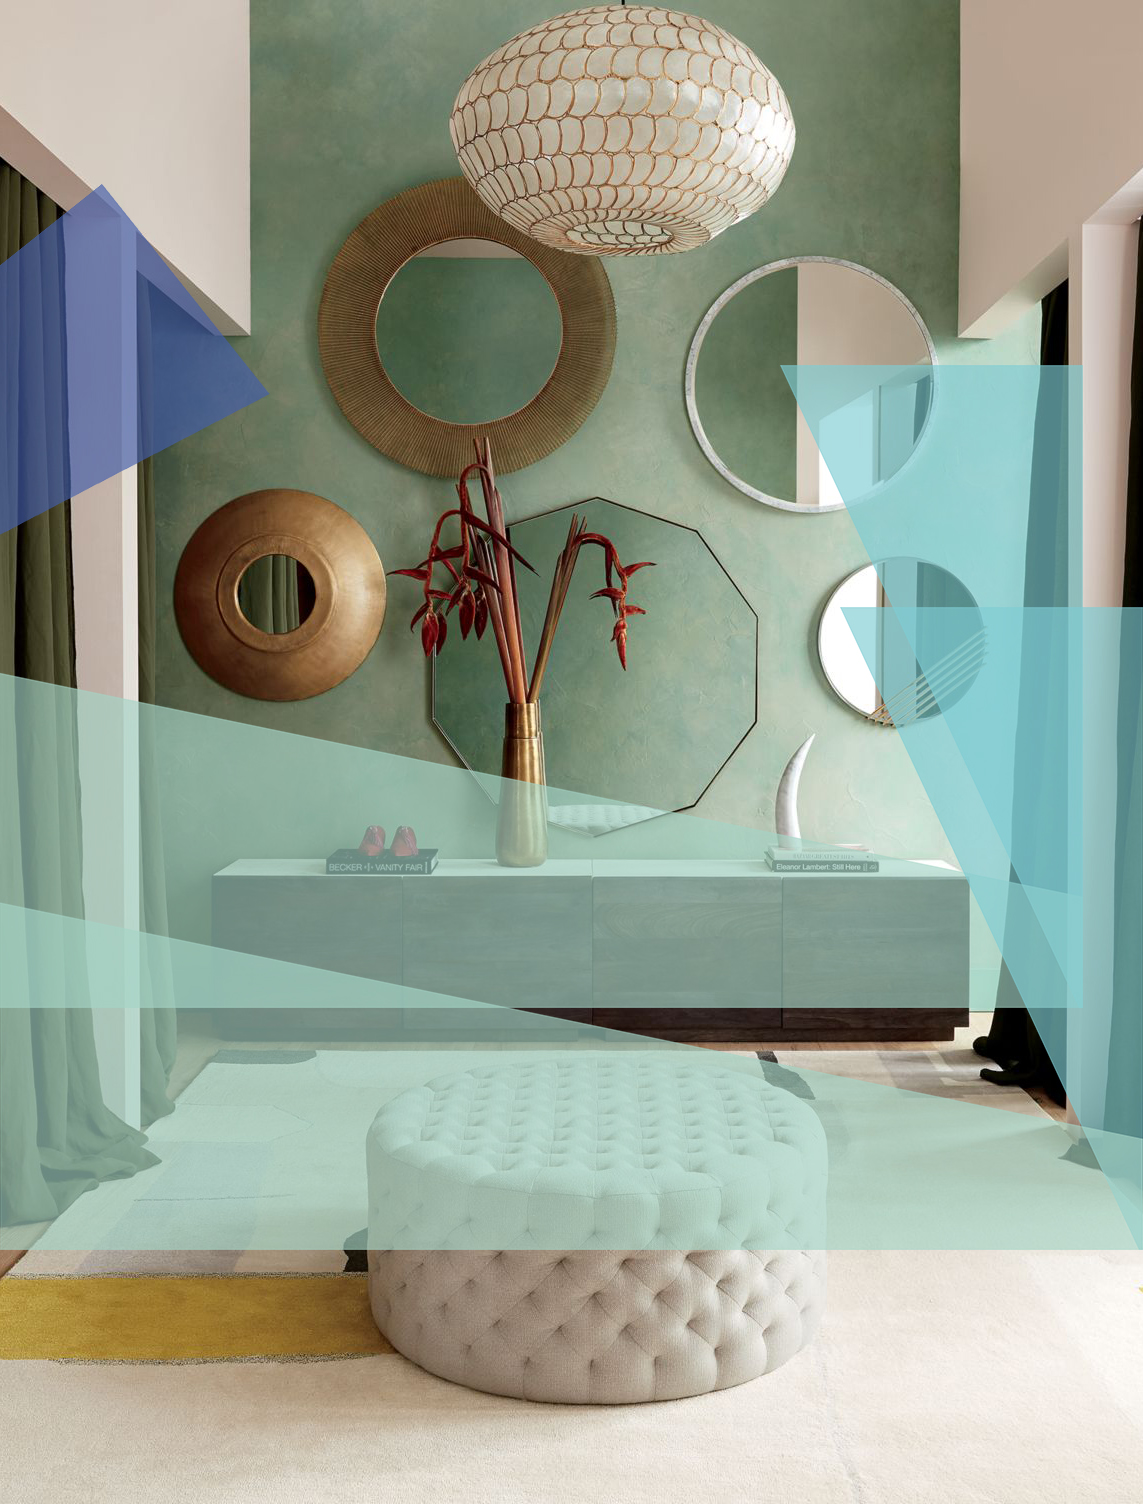 17 Creative Wall Decor Ideas For Every Room In Your House Real Simple